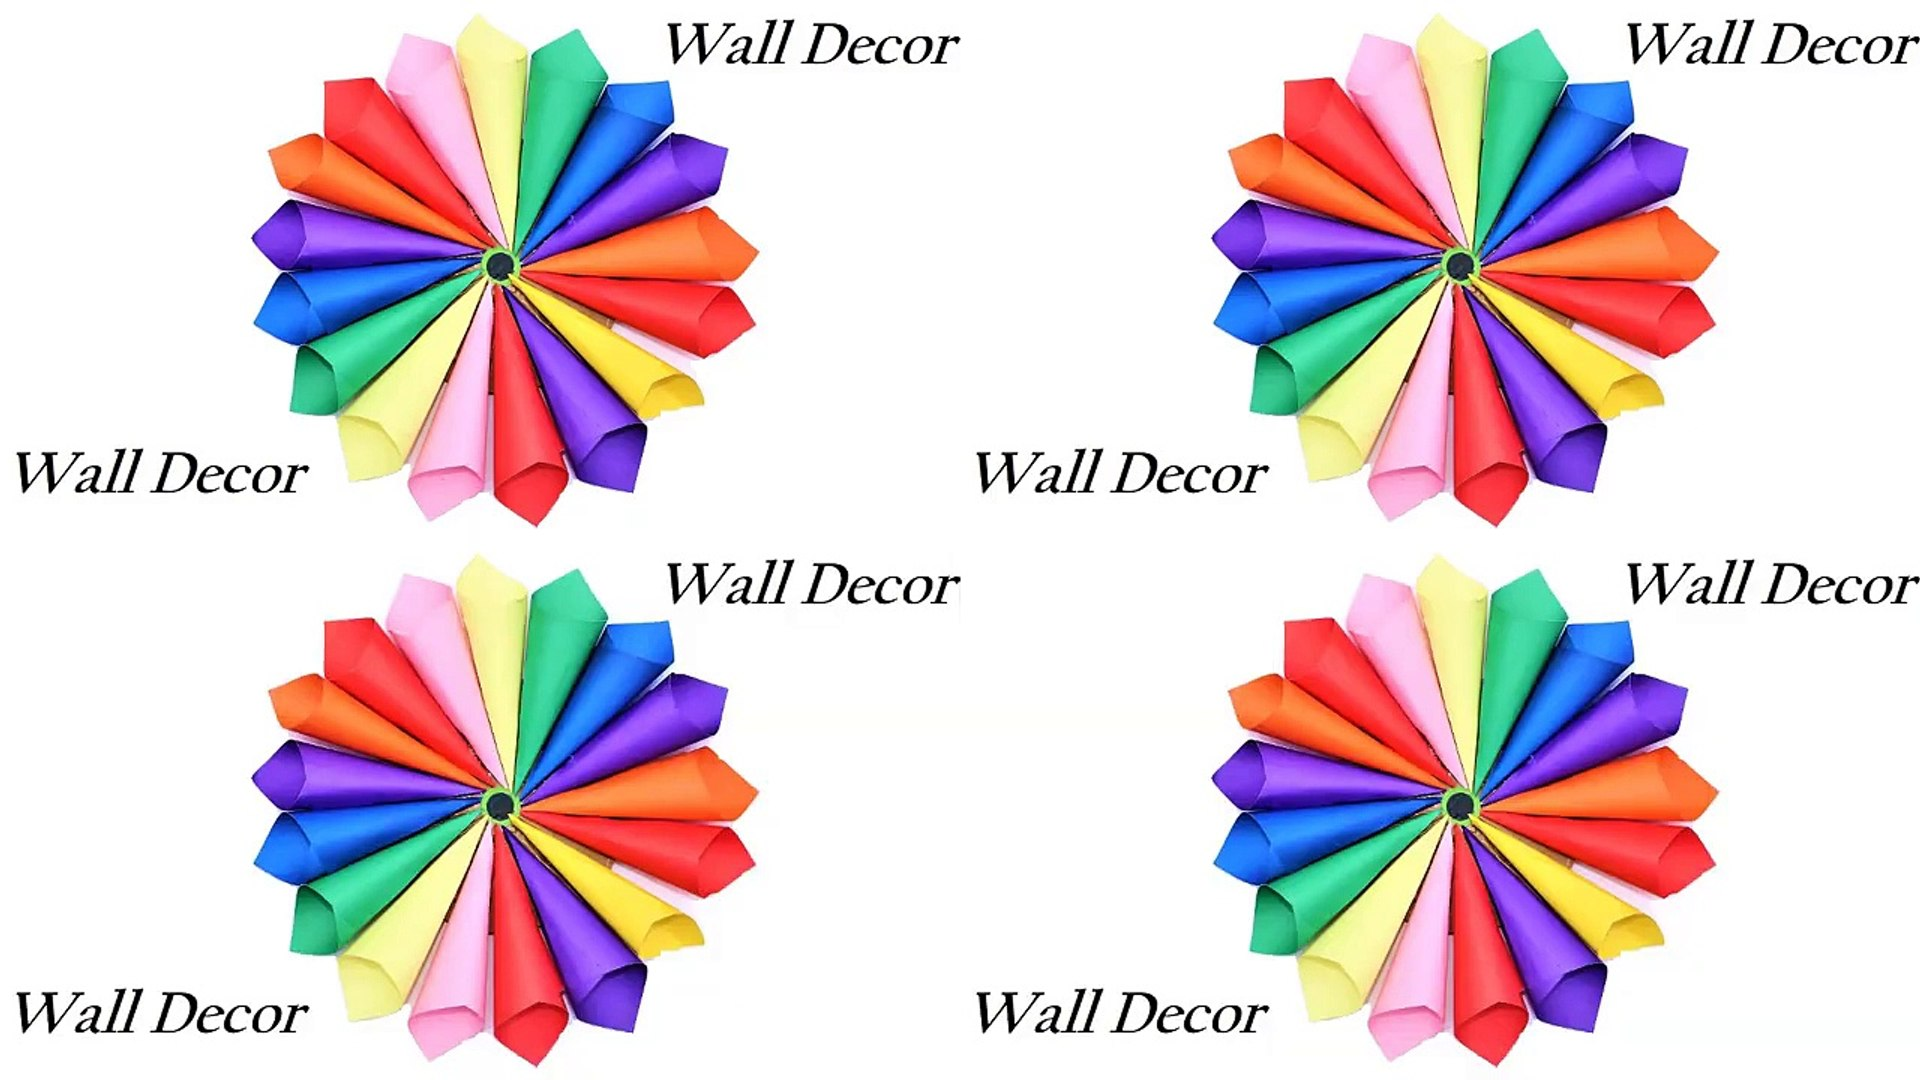 Wall Decoration Ideas With Paper from s1.dmcdn.net